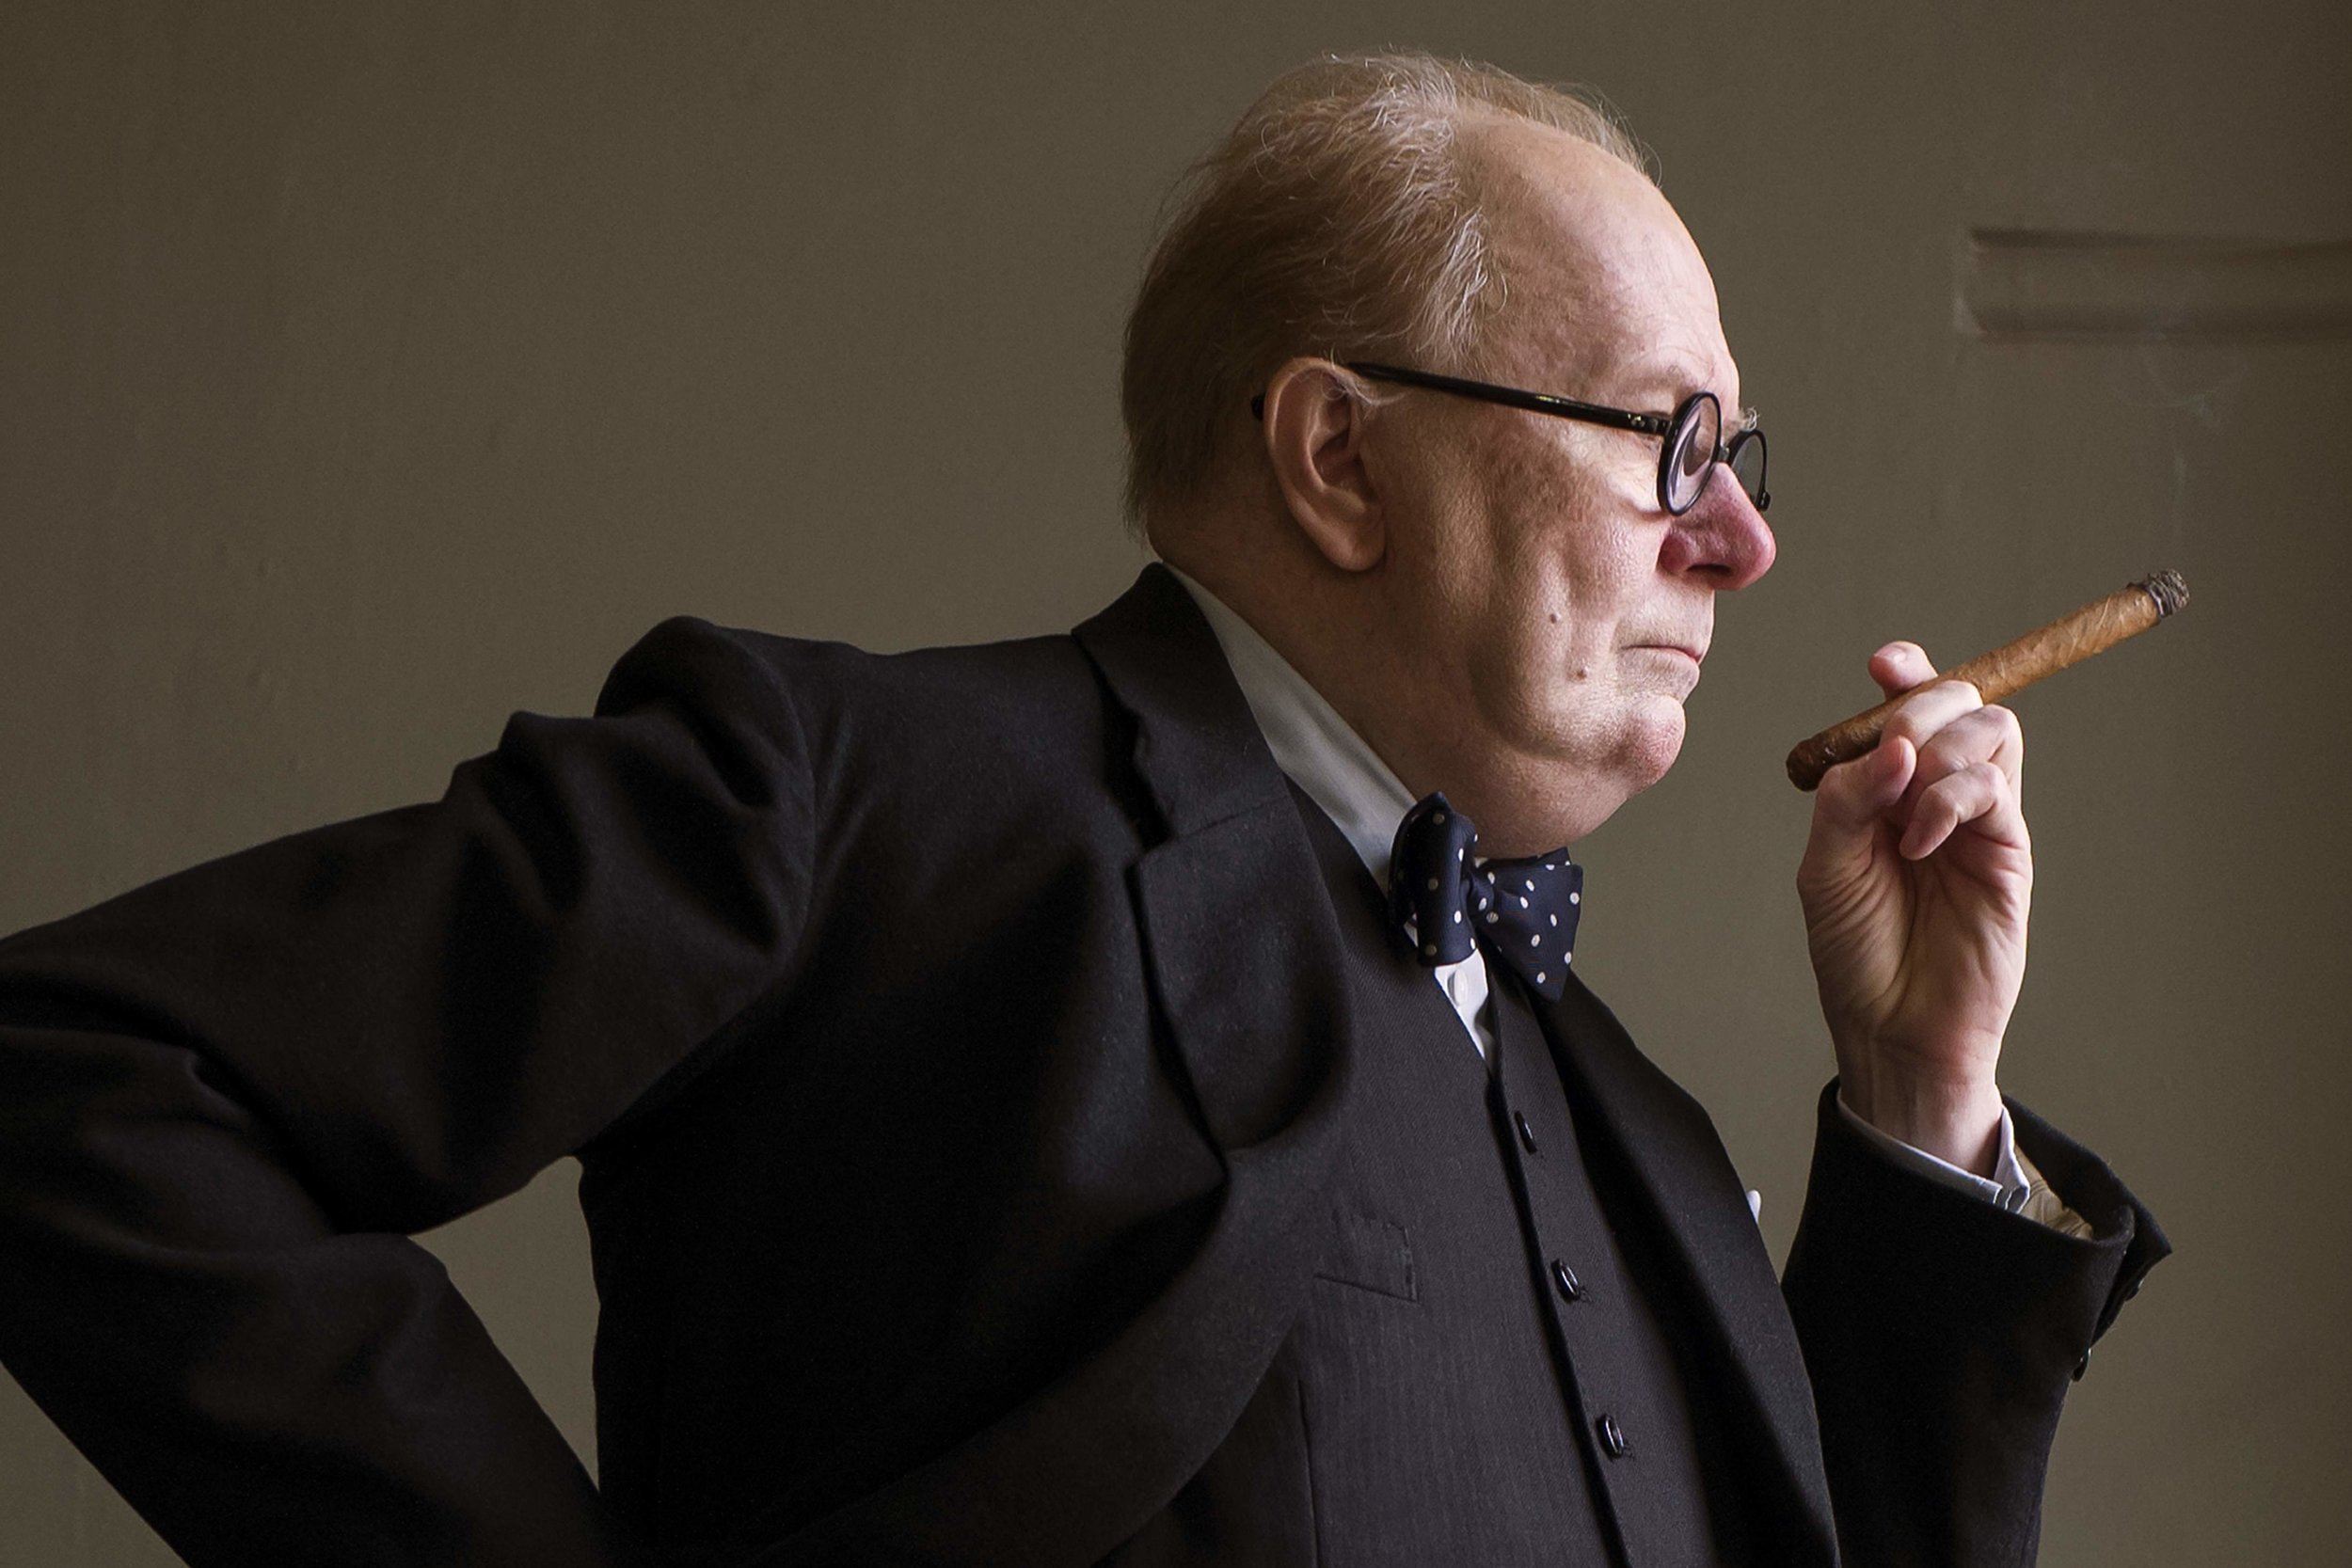 Gary Oldman as Winston Churchill (Focus Features)